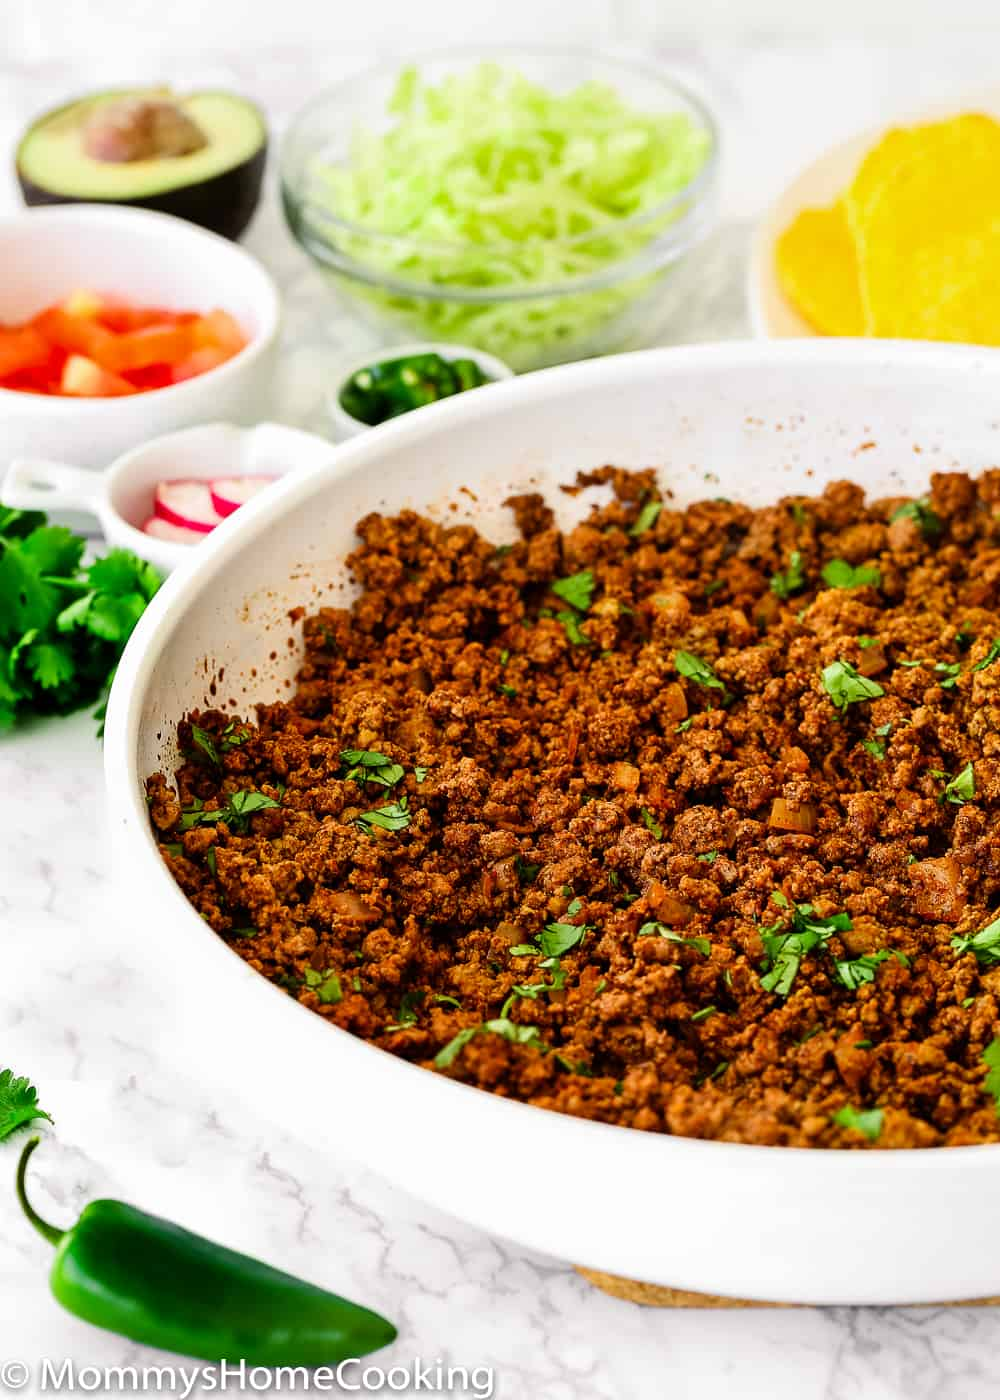 Cooked Ground Beef for Tacos in a white skillet  surrounded by taco toppings